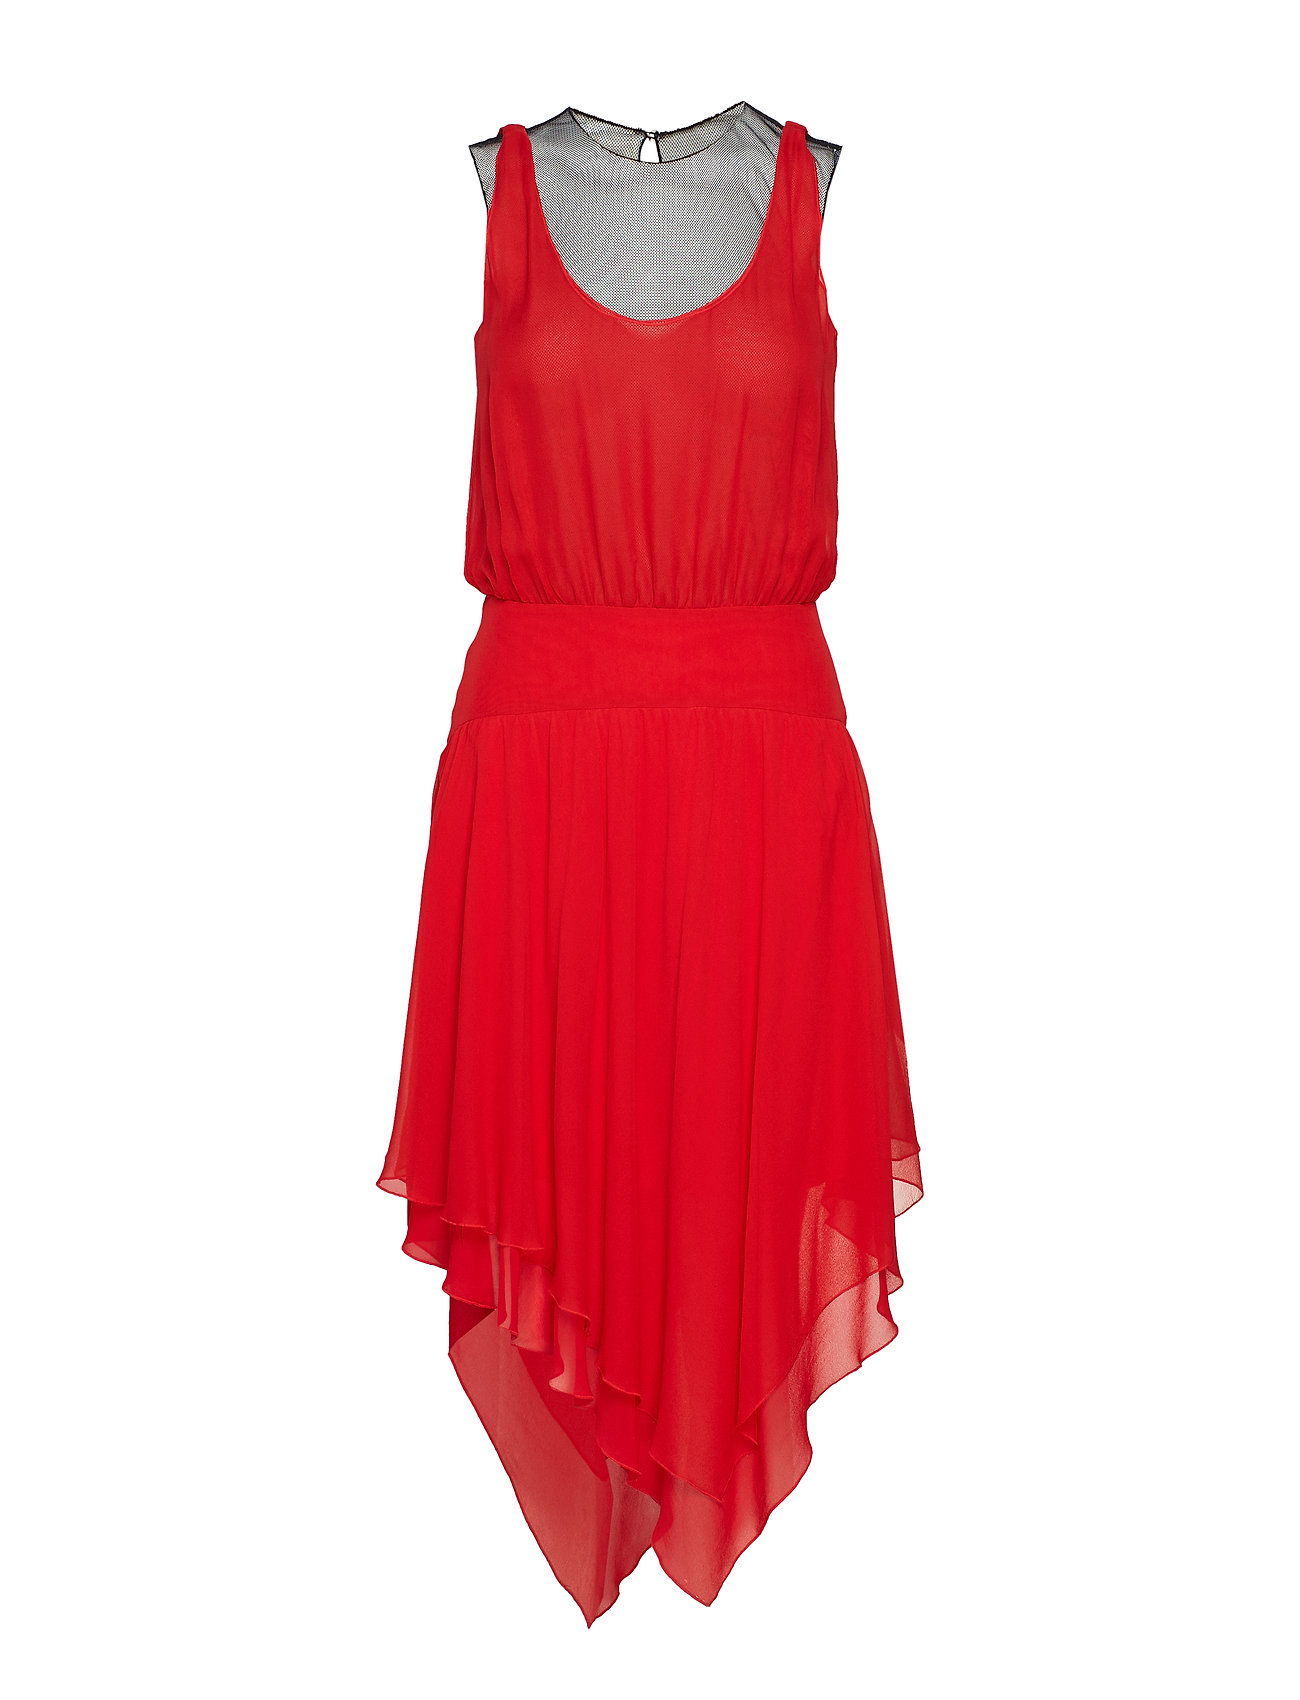 Karl Lagerfeld Silk Ggt & Mesh Evening Dress - RED